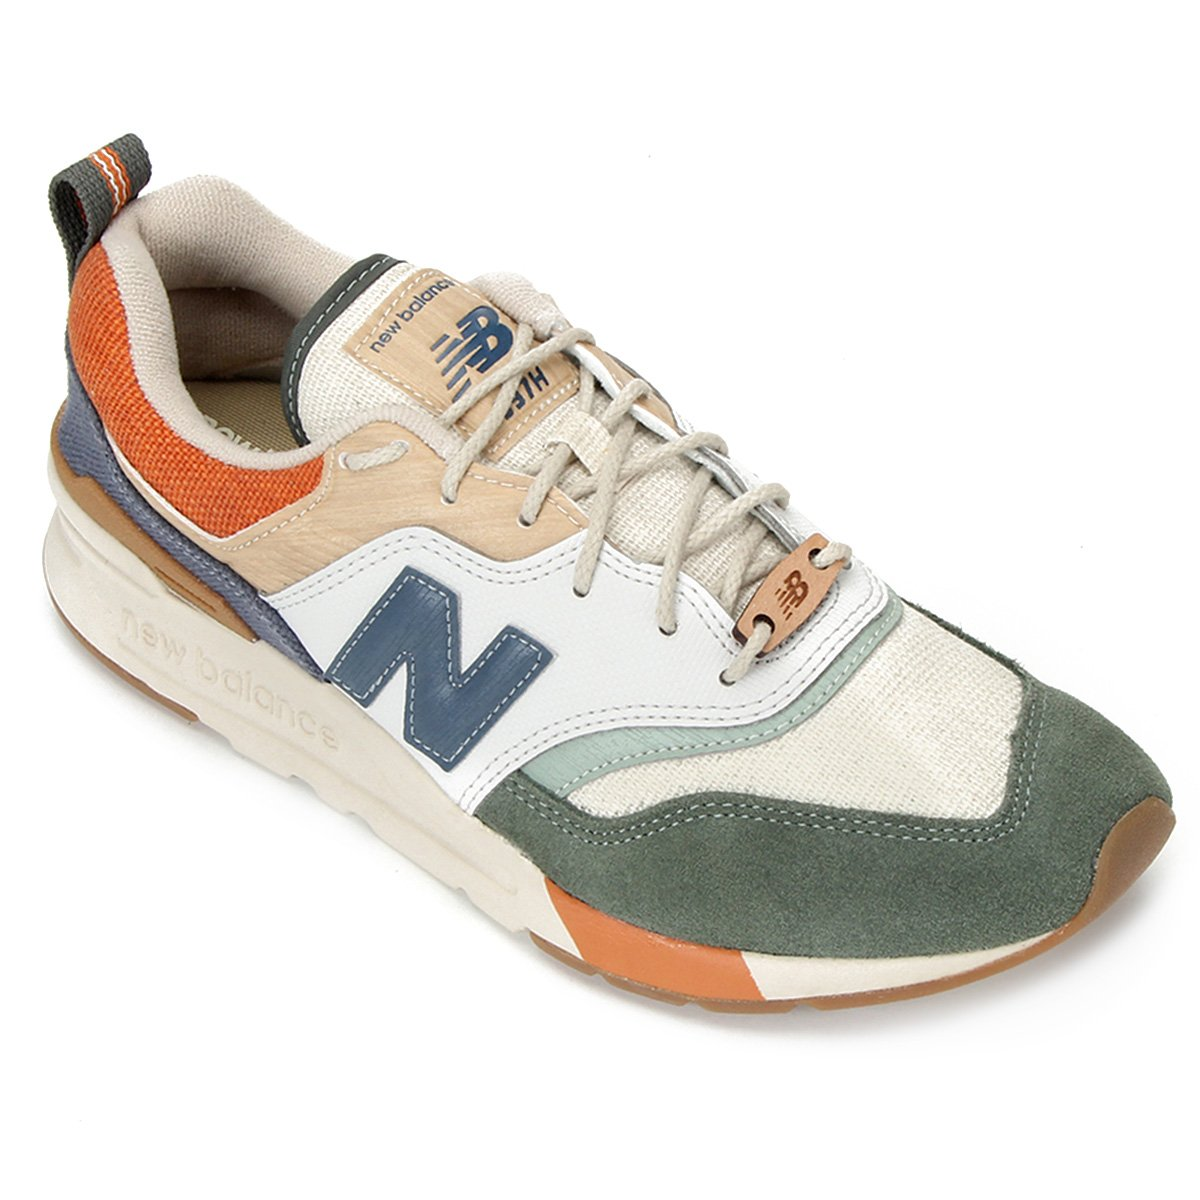 Pepino Sip Chaise longue  Tênis New Balance 997 Masculino - Branco e Bege | Allianz Parque Shop